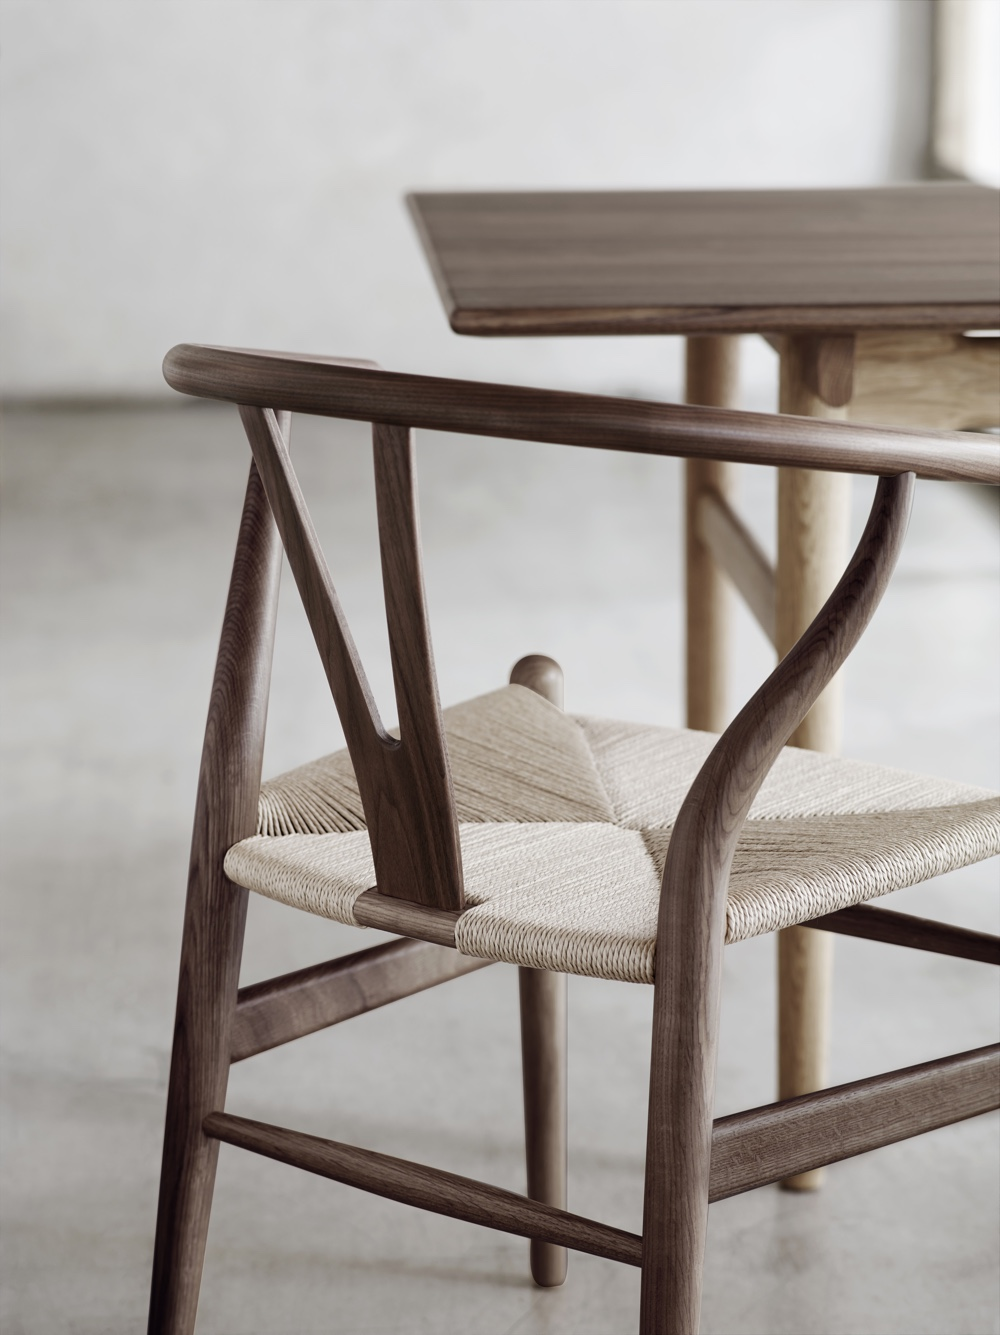 Wishbone Chair detail. Image © Carl Hansen & Søn.